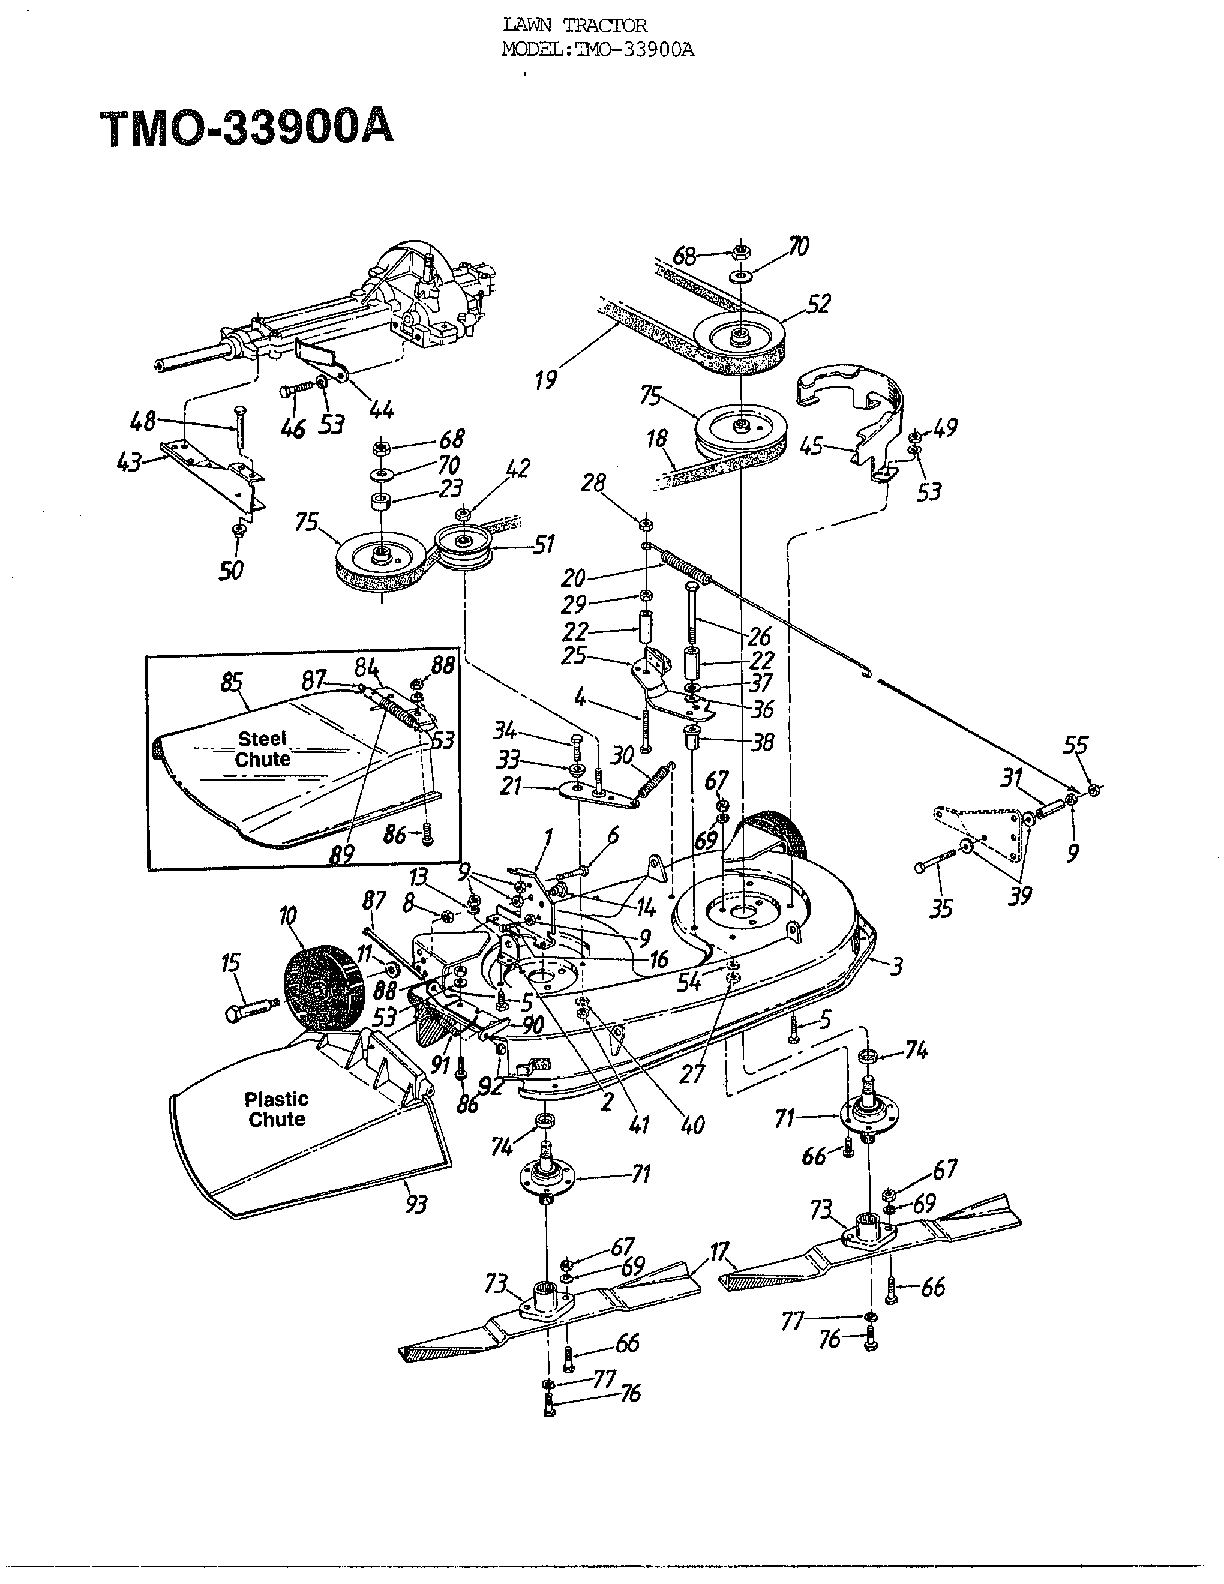 huskee lawn tractor parts diagram lanz bulldog wiring riding mower free engine